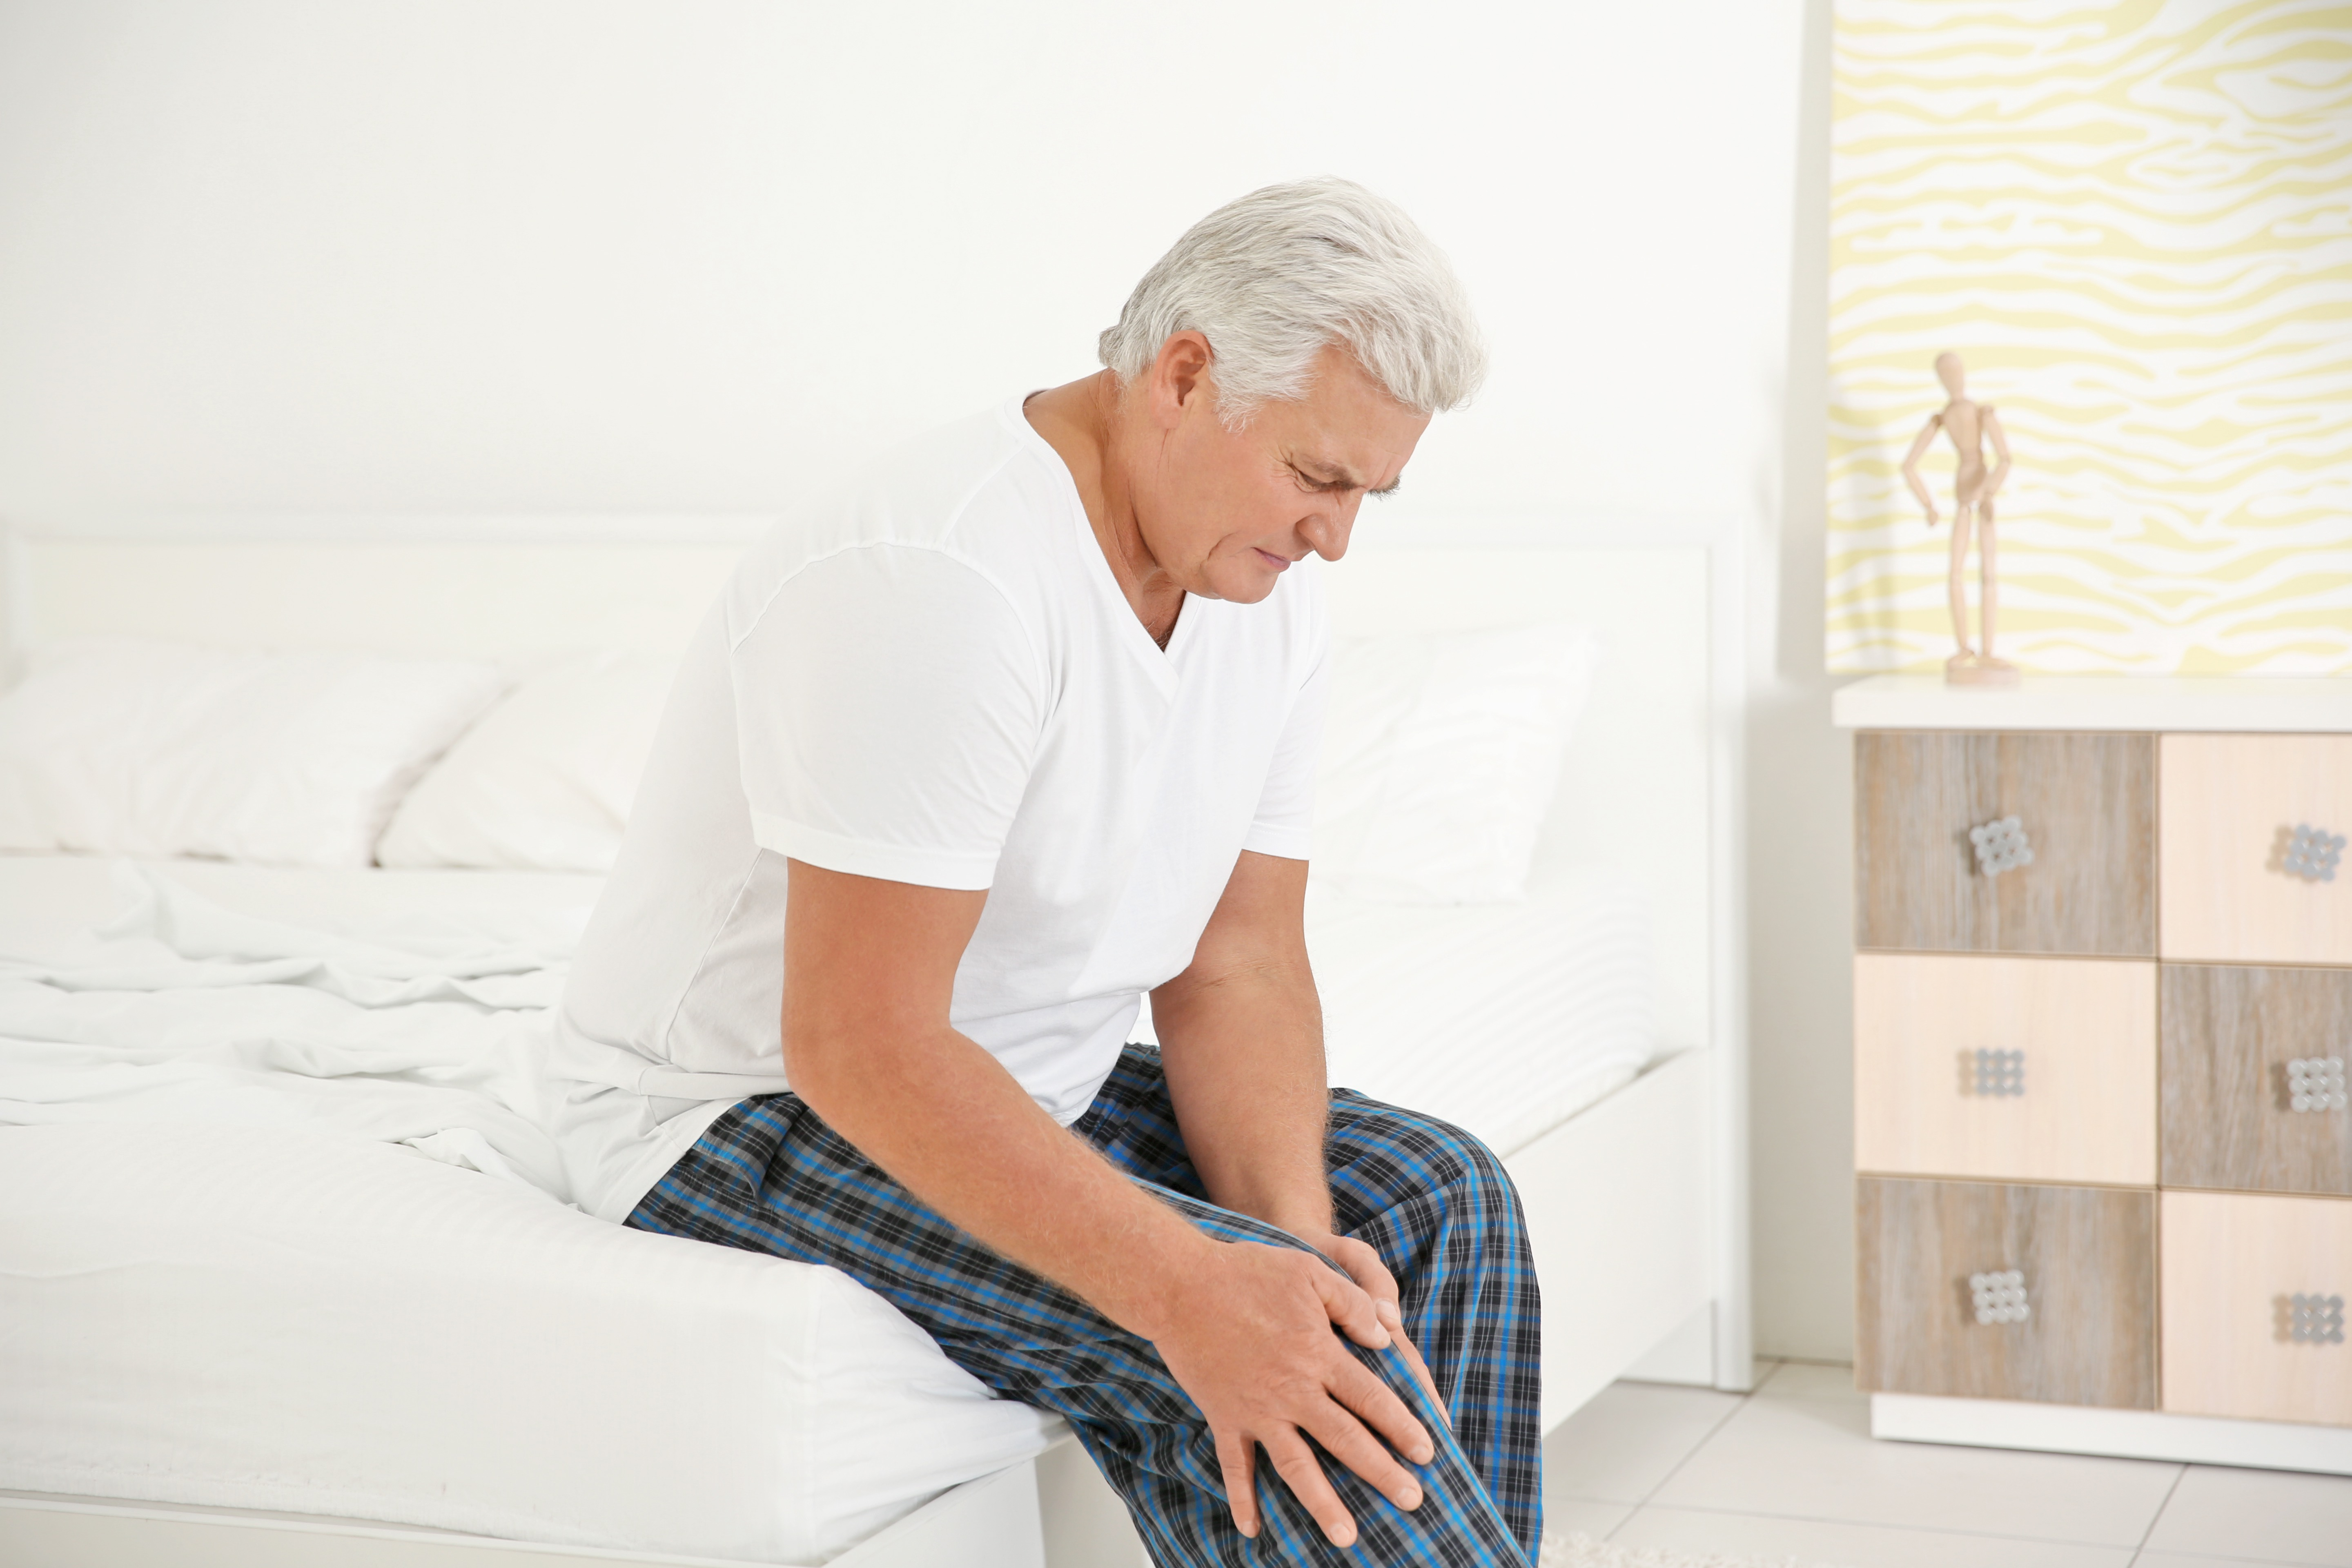 Keep Blood Flowing to Alleviate Leg Pain